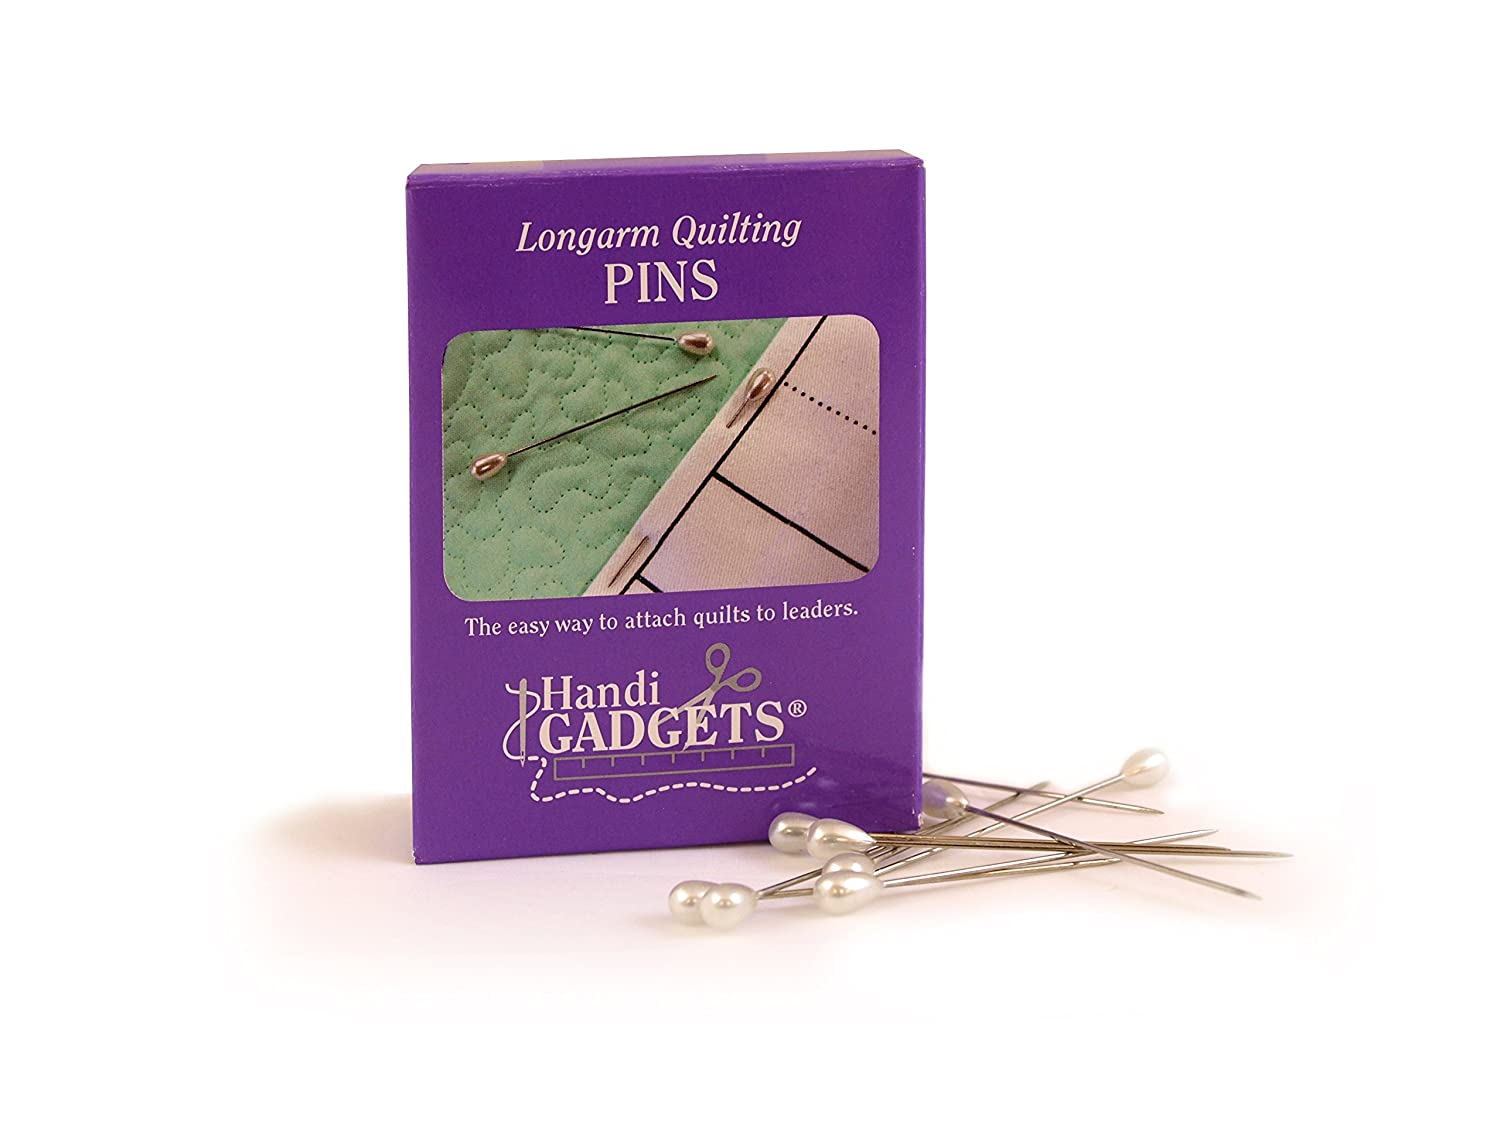 Handi Quilter Longarm Quilting Pins 2 in. 144 pc. 4336994210